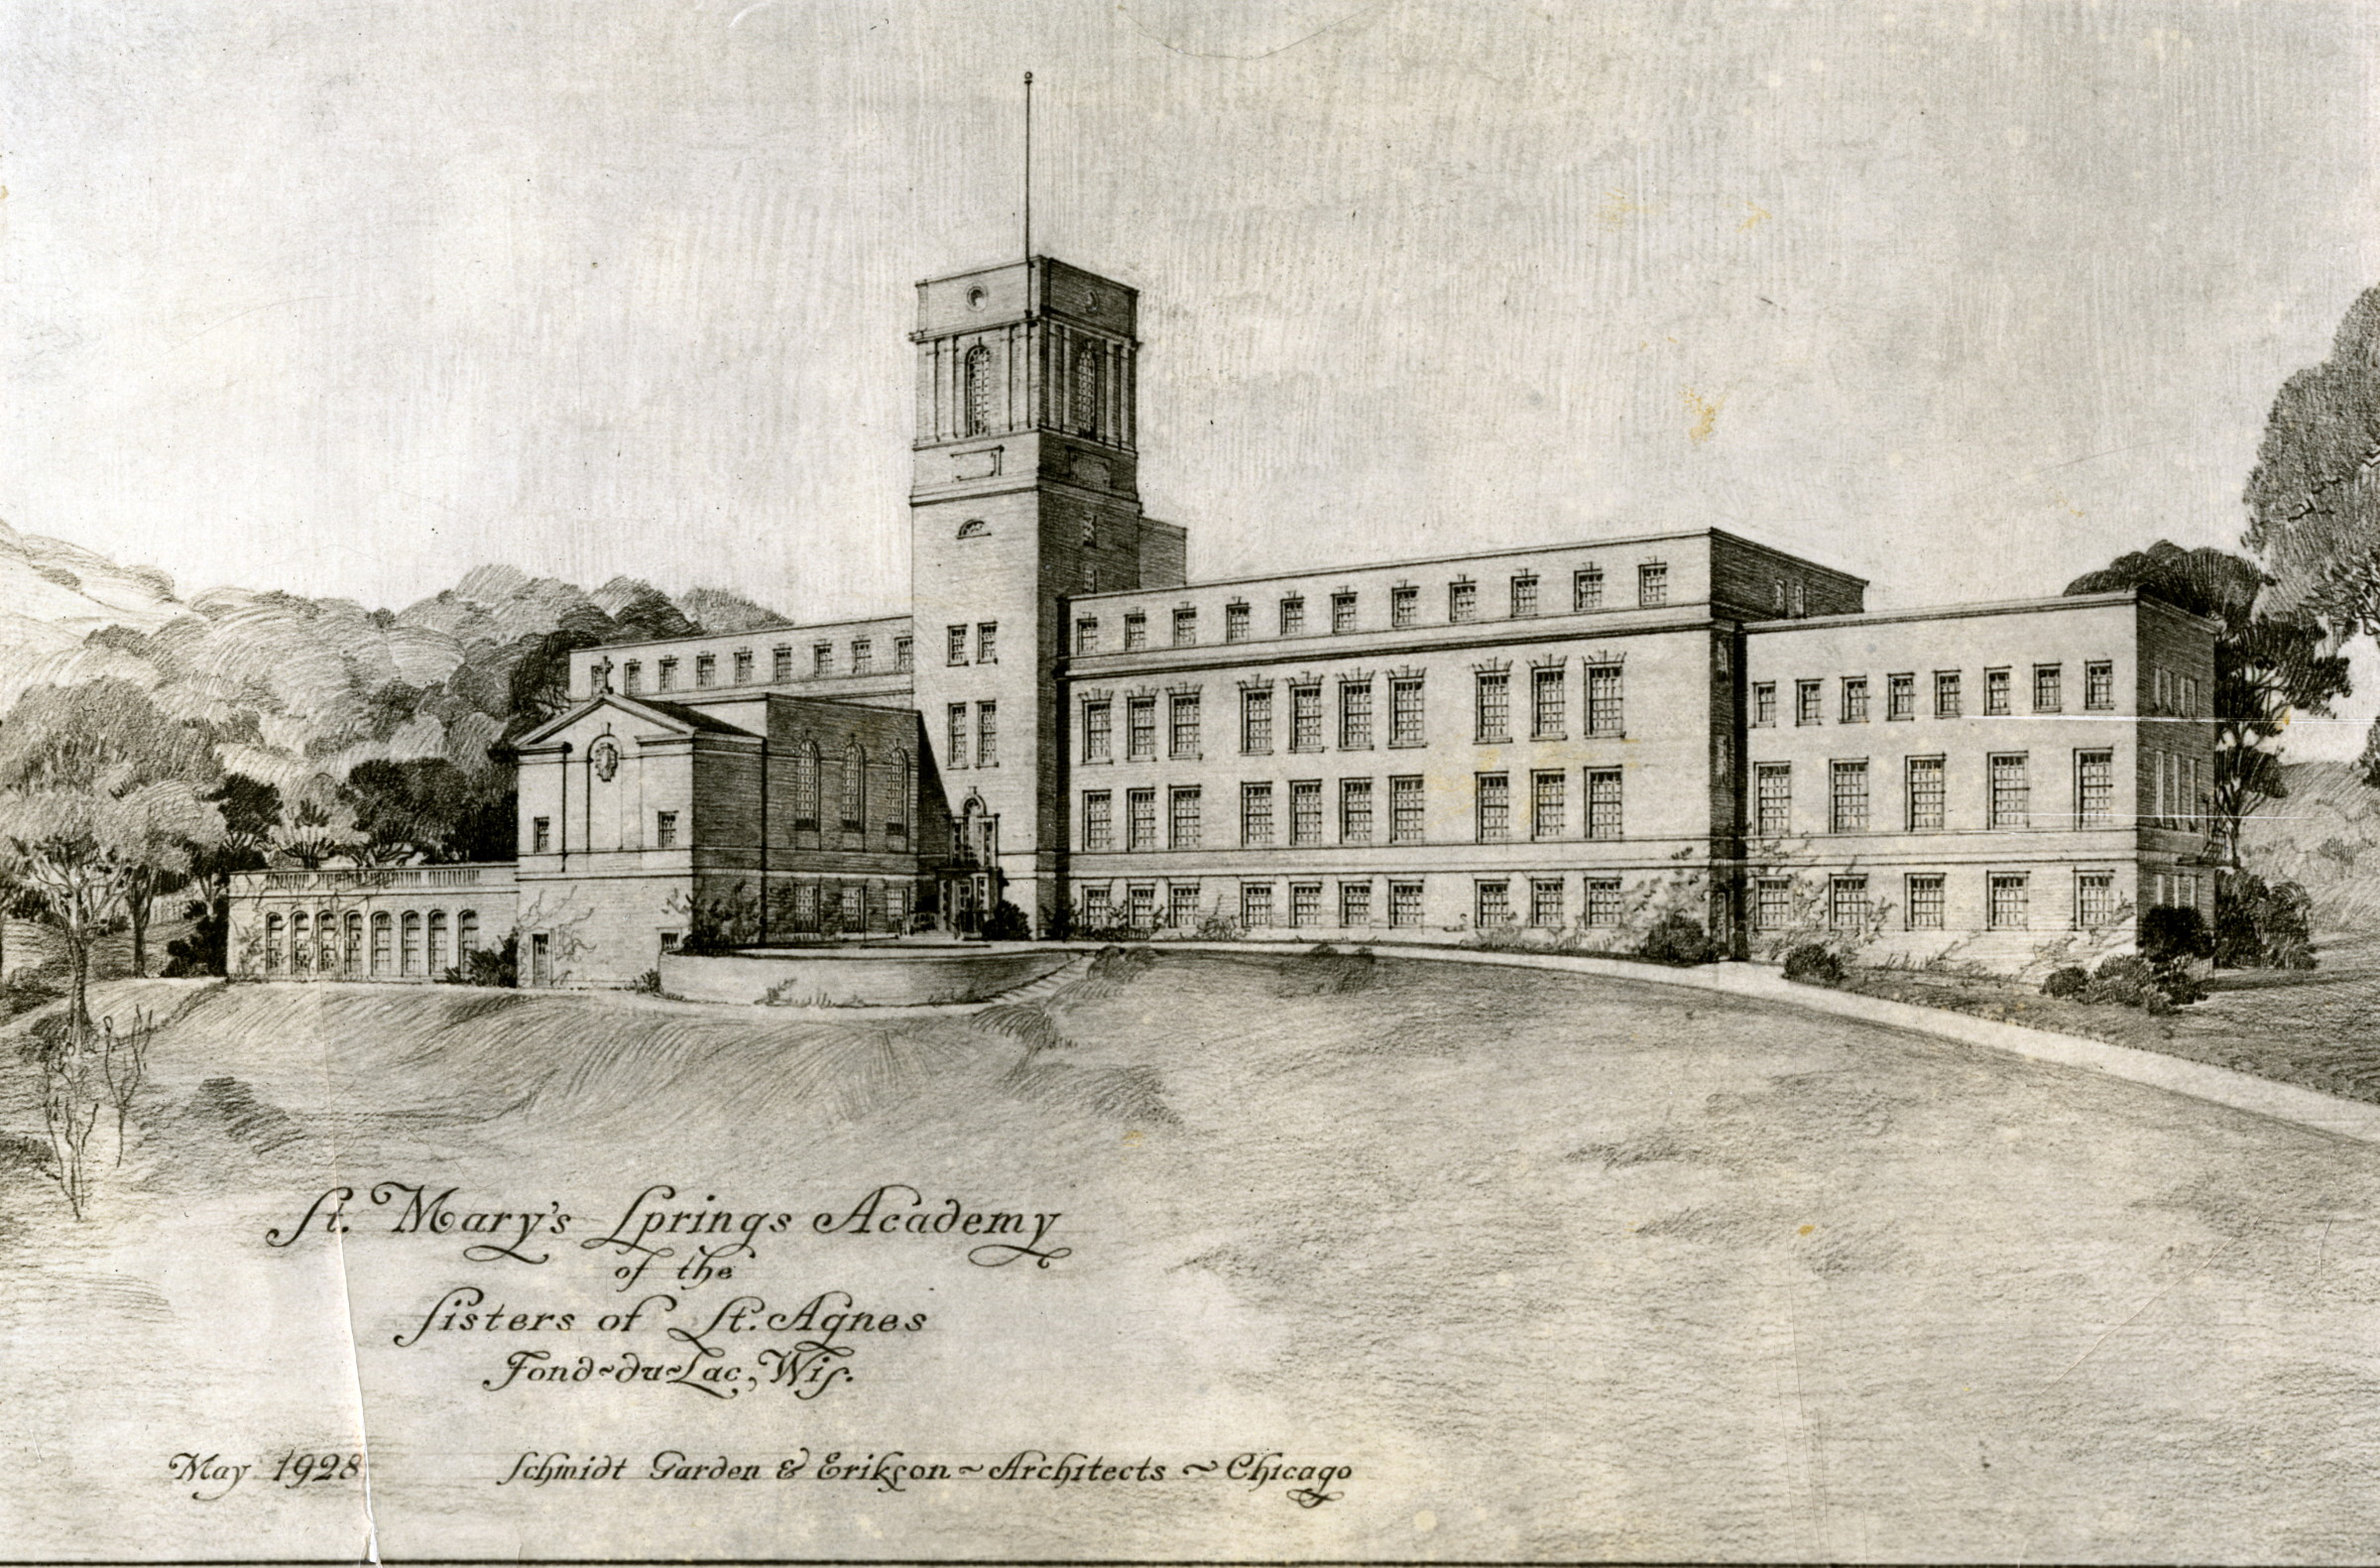 Architect's rendering of St. Mary's Springs Academy, May 1928.